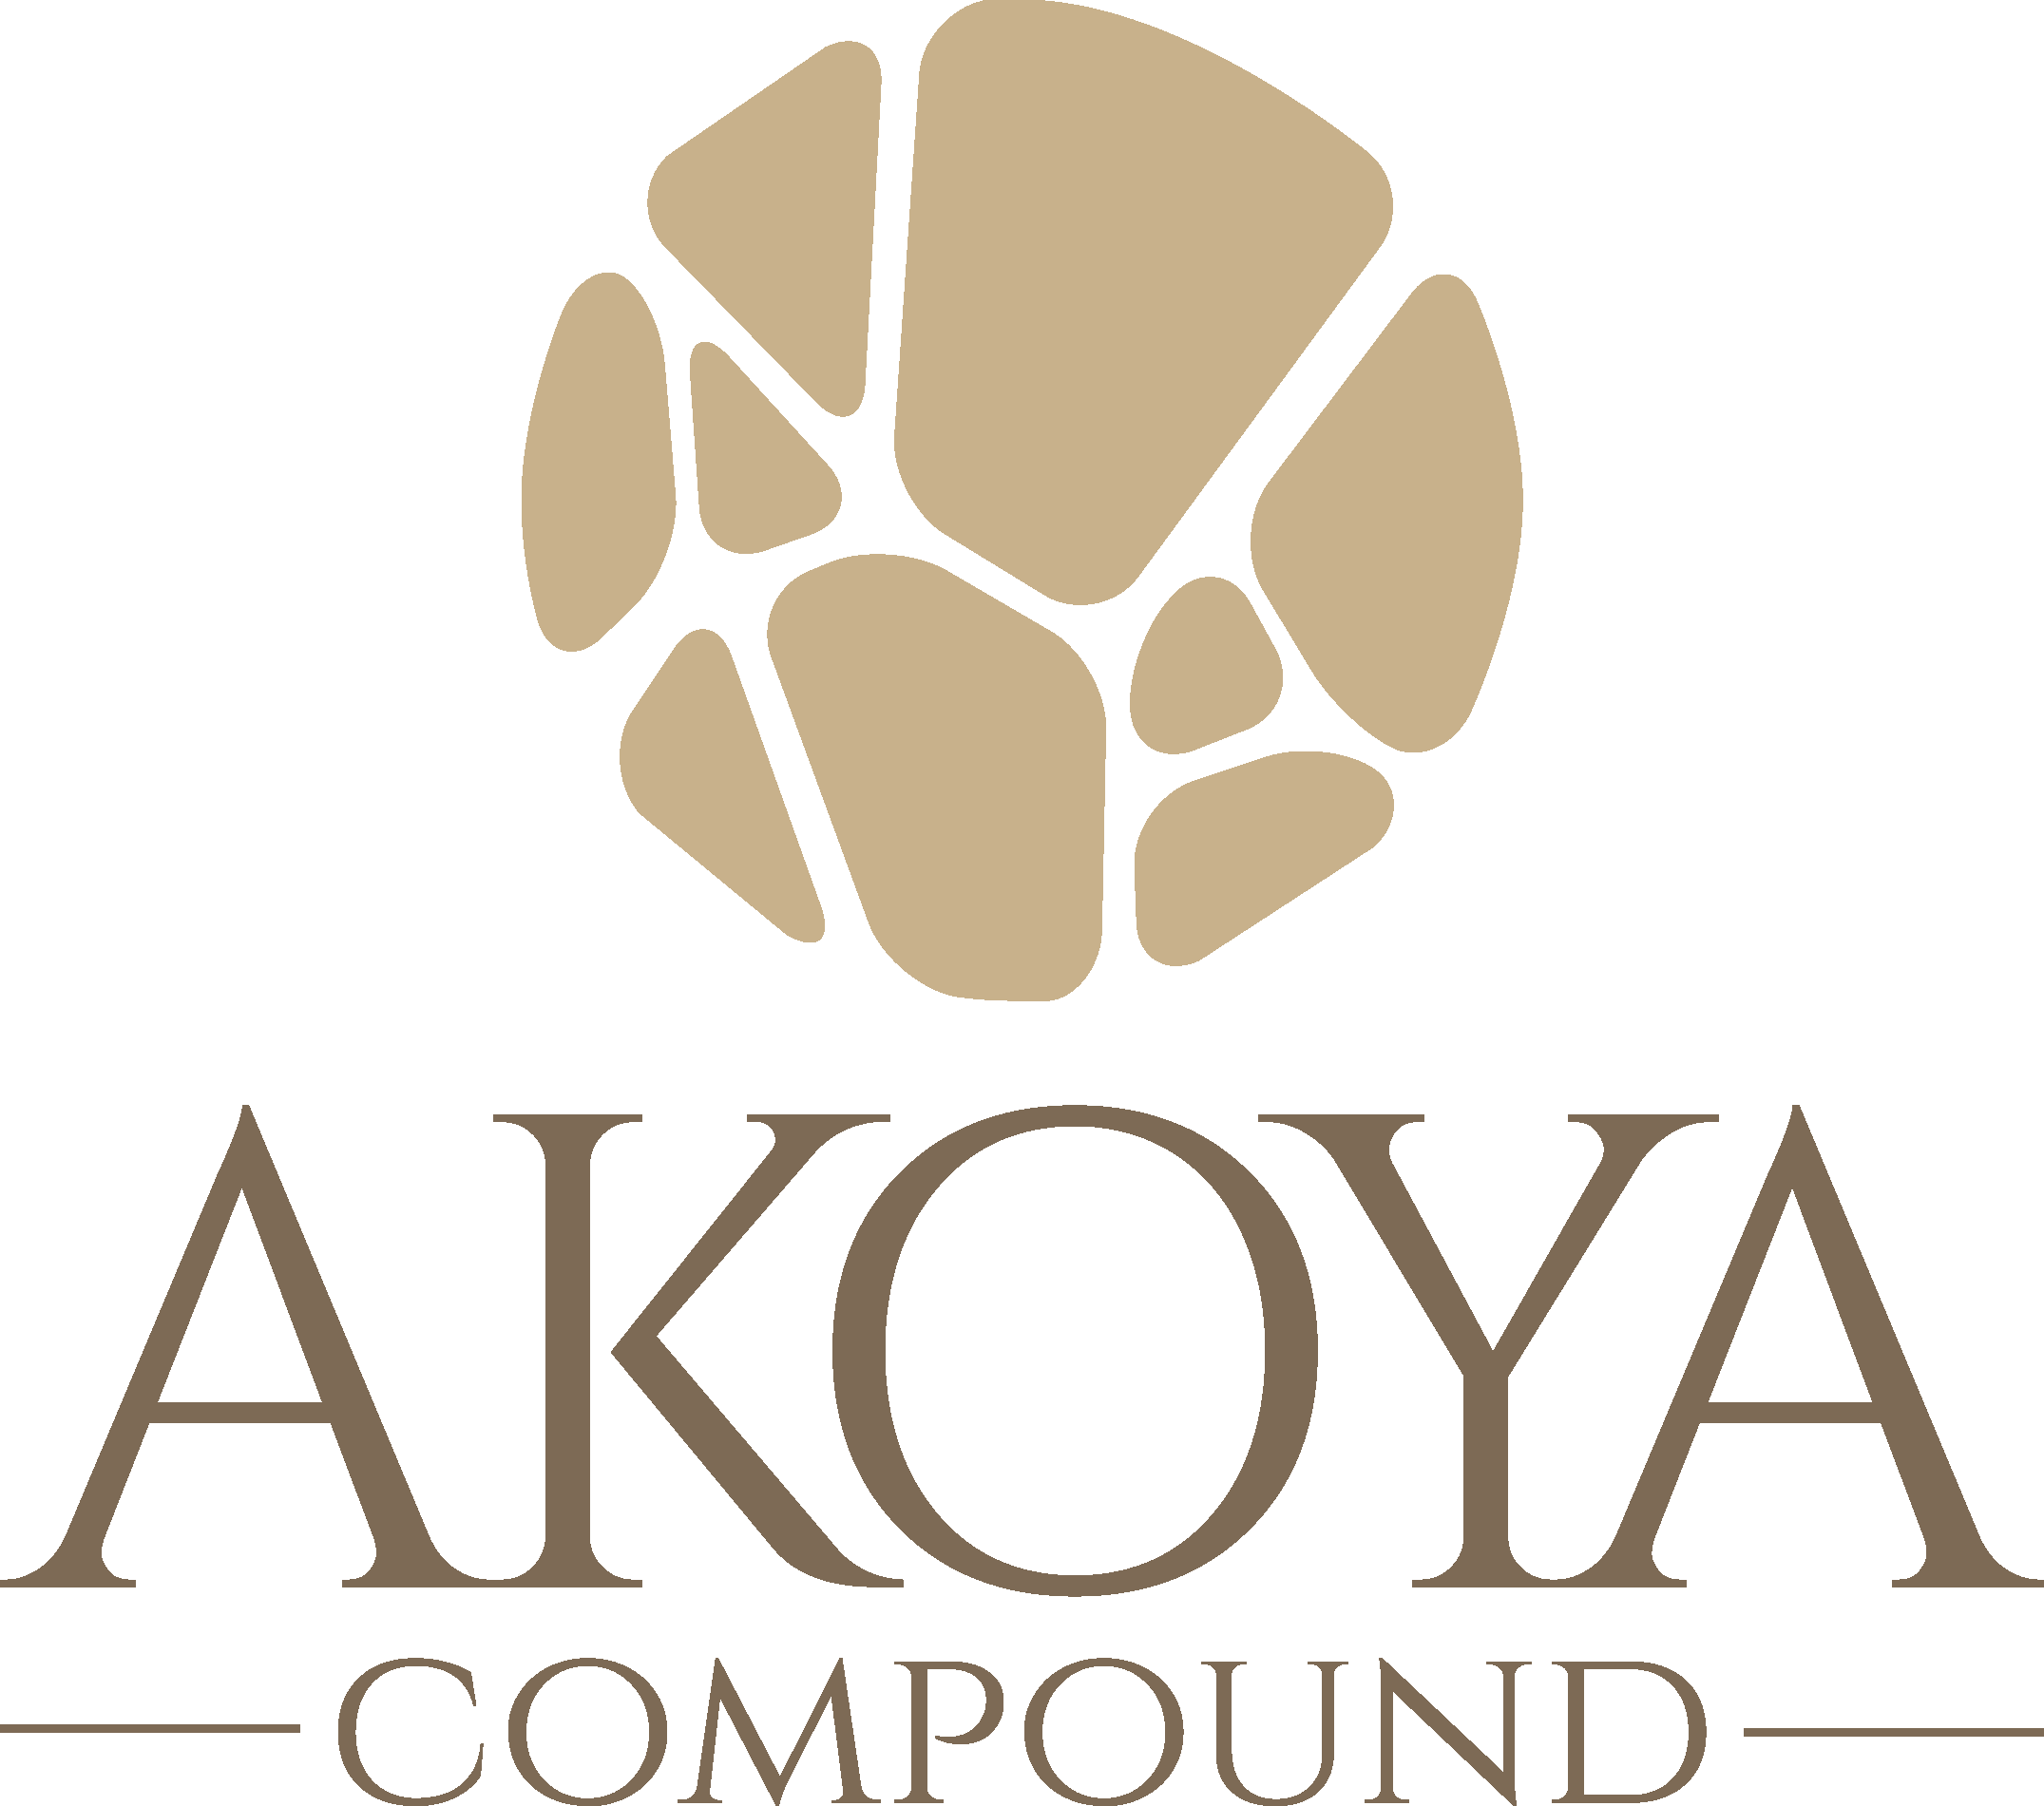 Akoya Compound